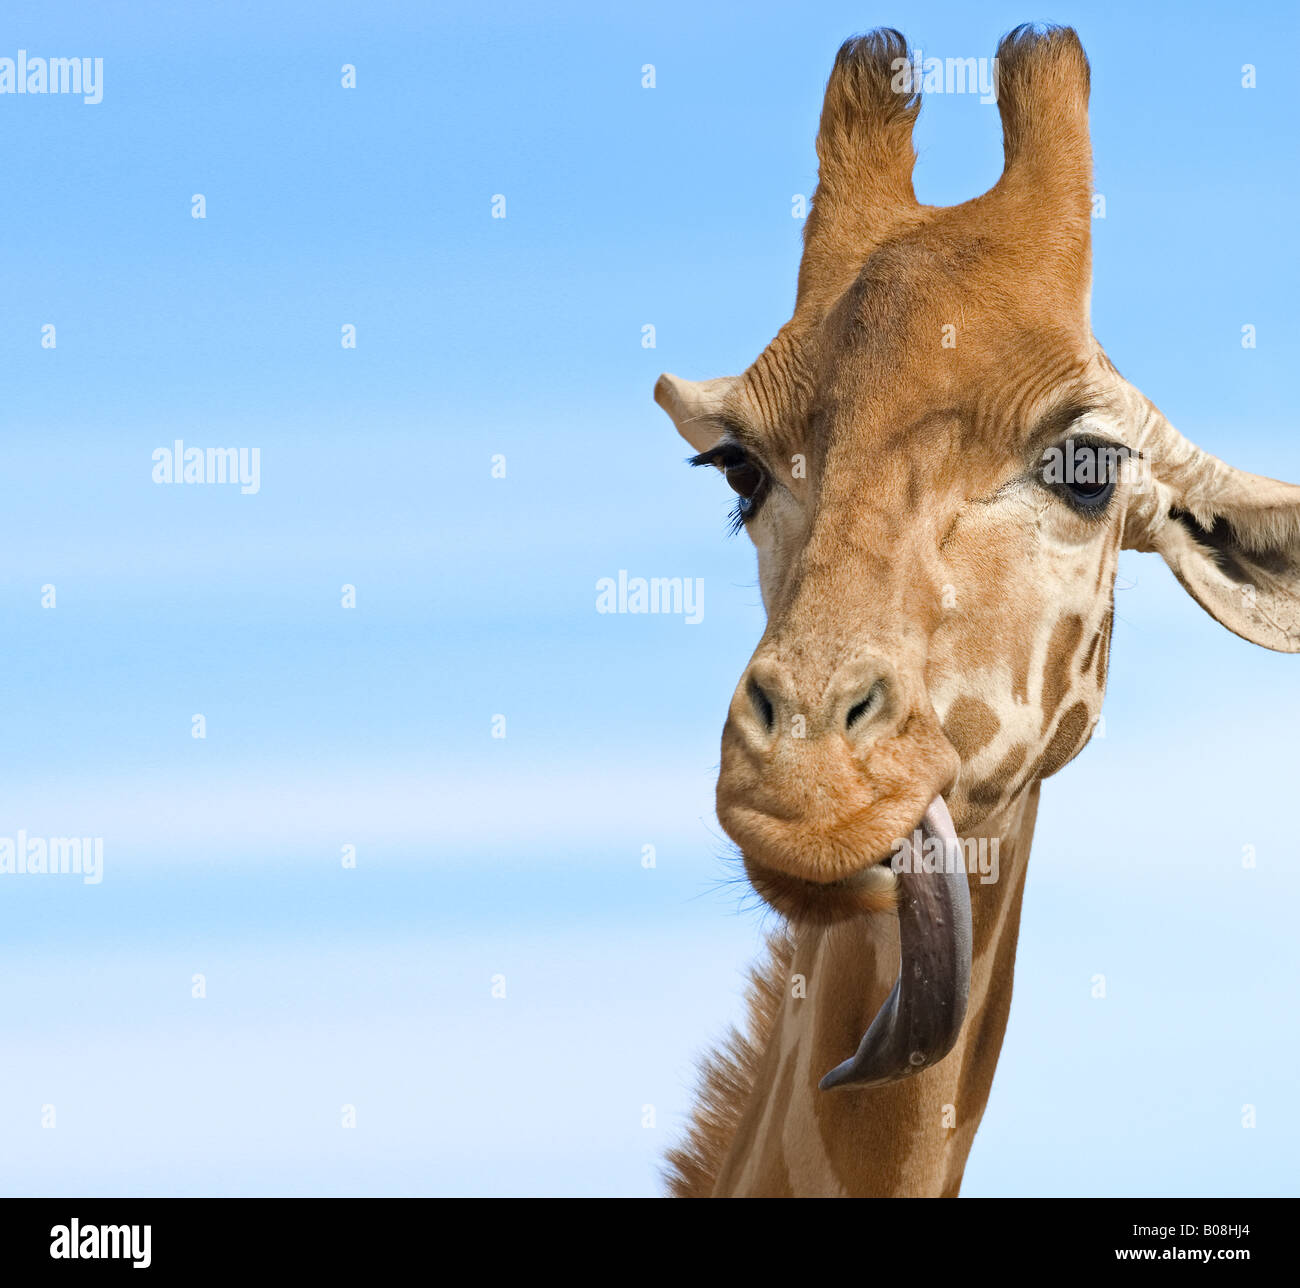 a close up of a giraffe with its long tongue out looking stupid lots of opy space - Stock Image